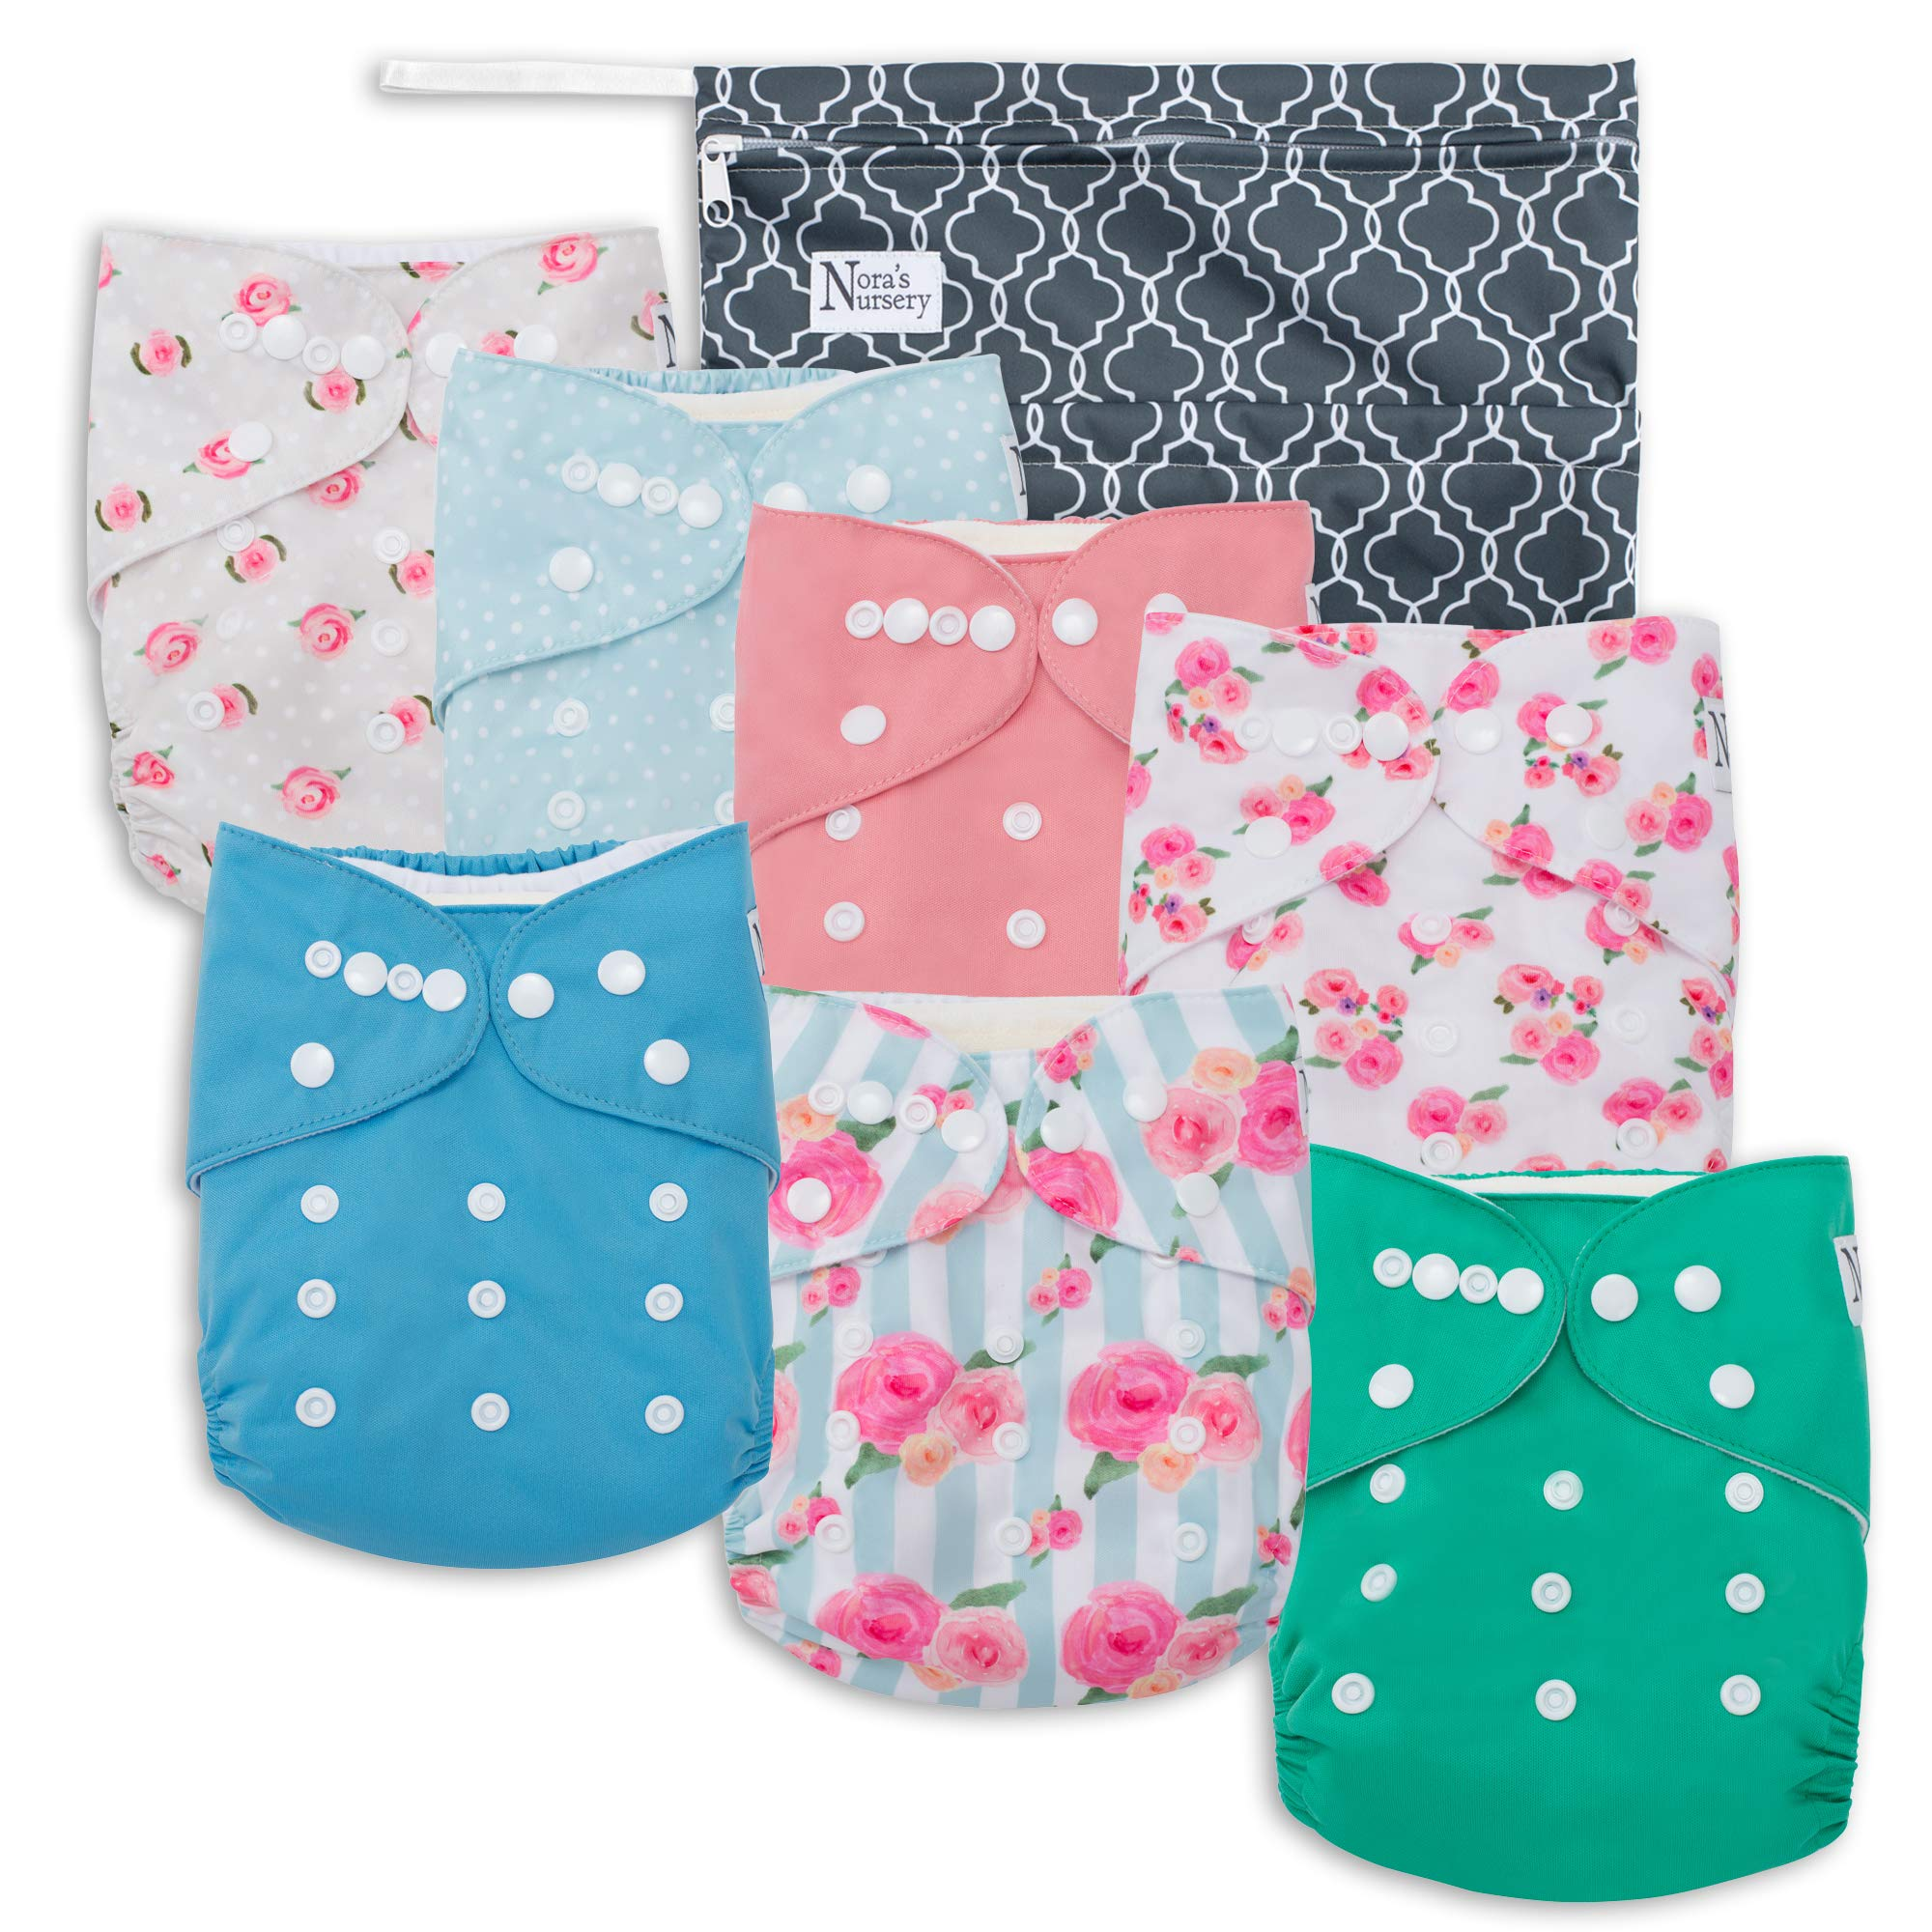 Peonies Baby Cloth Pocket Diapers 7 Pack, 7 Bamboo Inserts, 1 Wet Bag by Nora's Nursery by Nora's Nursery